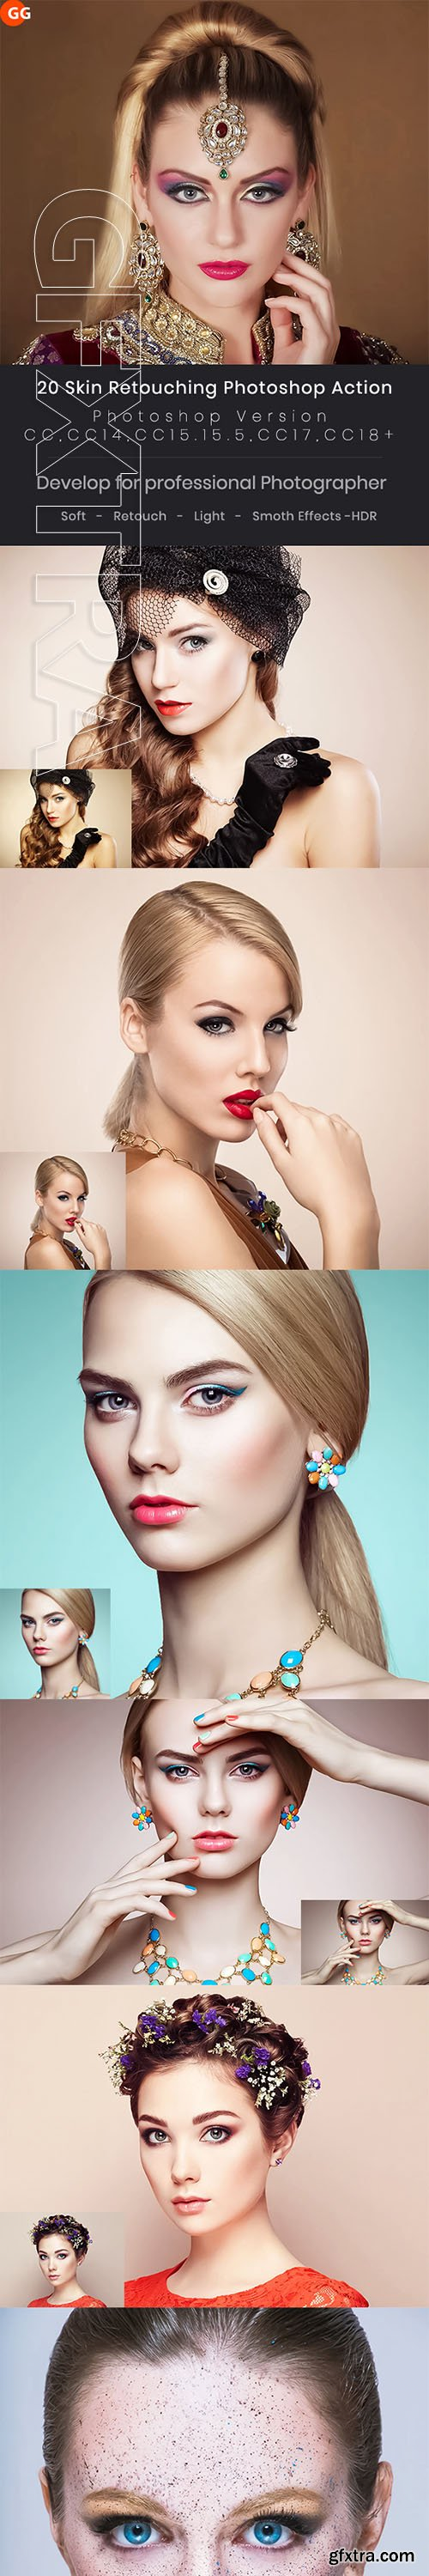 GraphicRiver - 20 Skin Retouching Photoshop Action 22937979